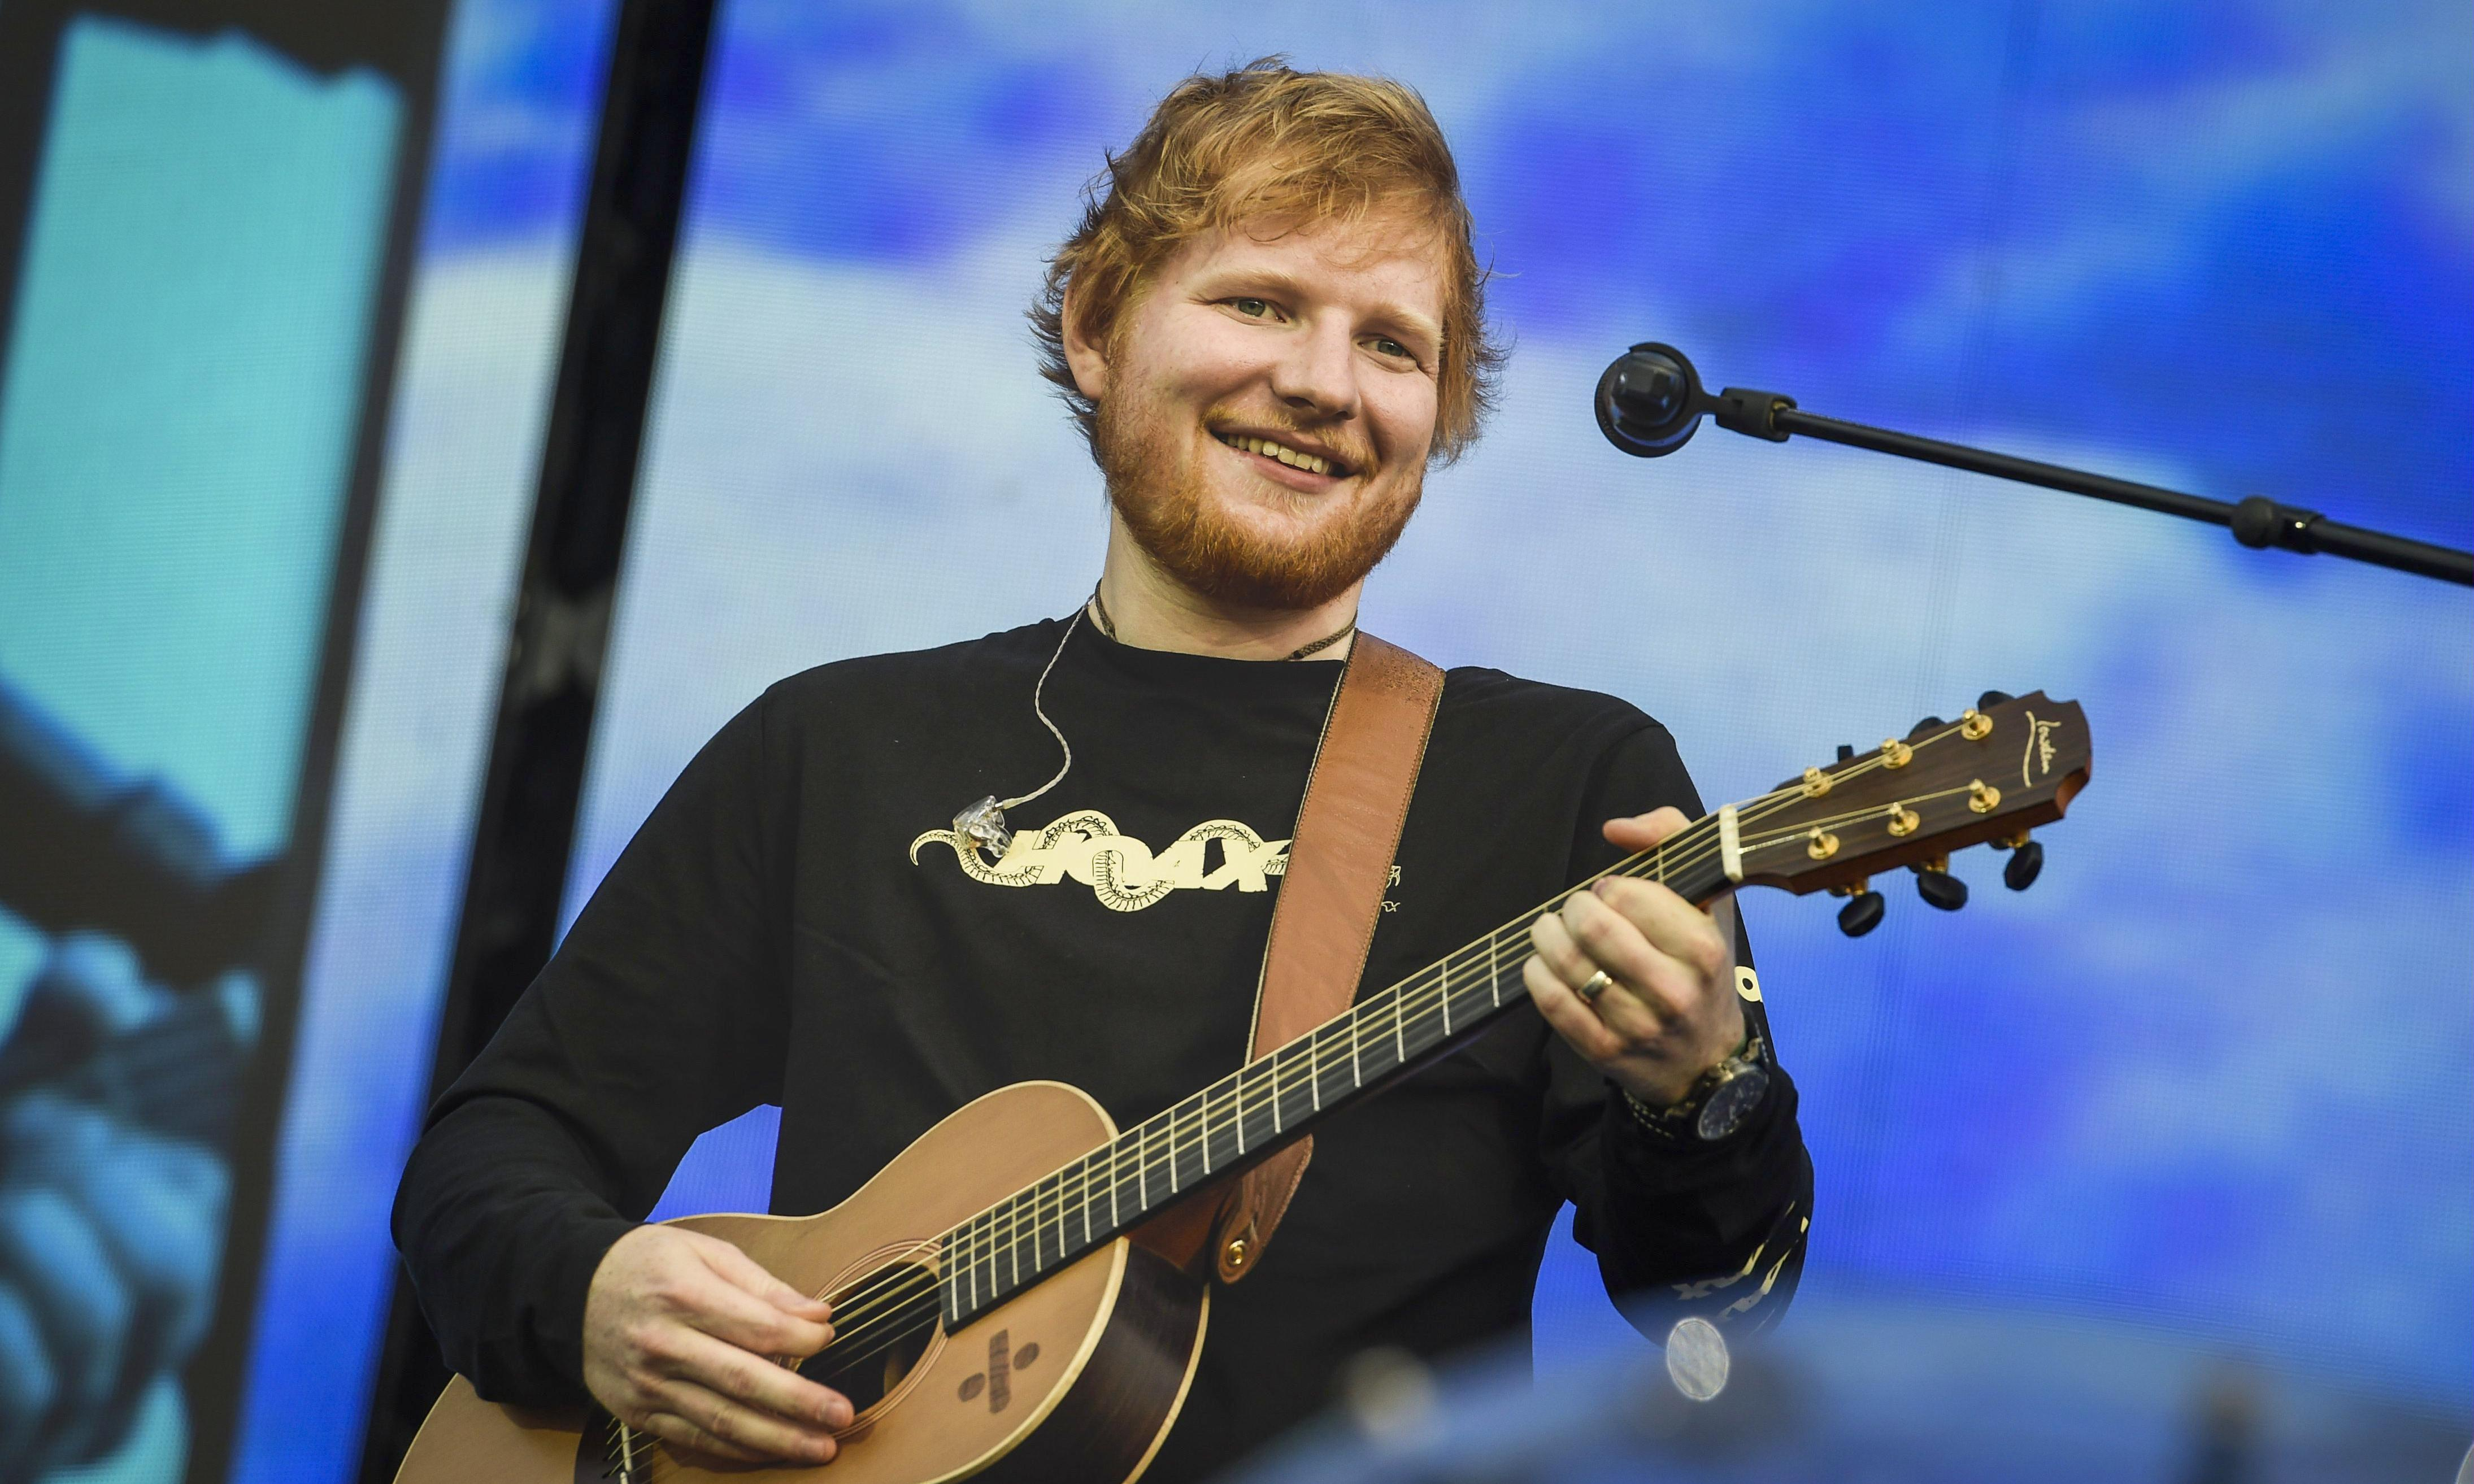 Ed Sheeran breaks U2's record for highest-grossing tour ever